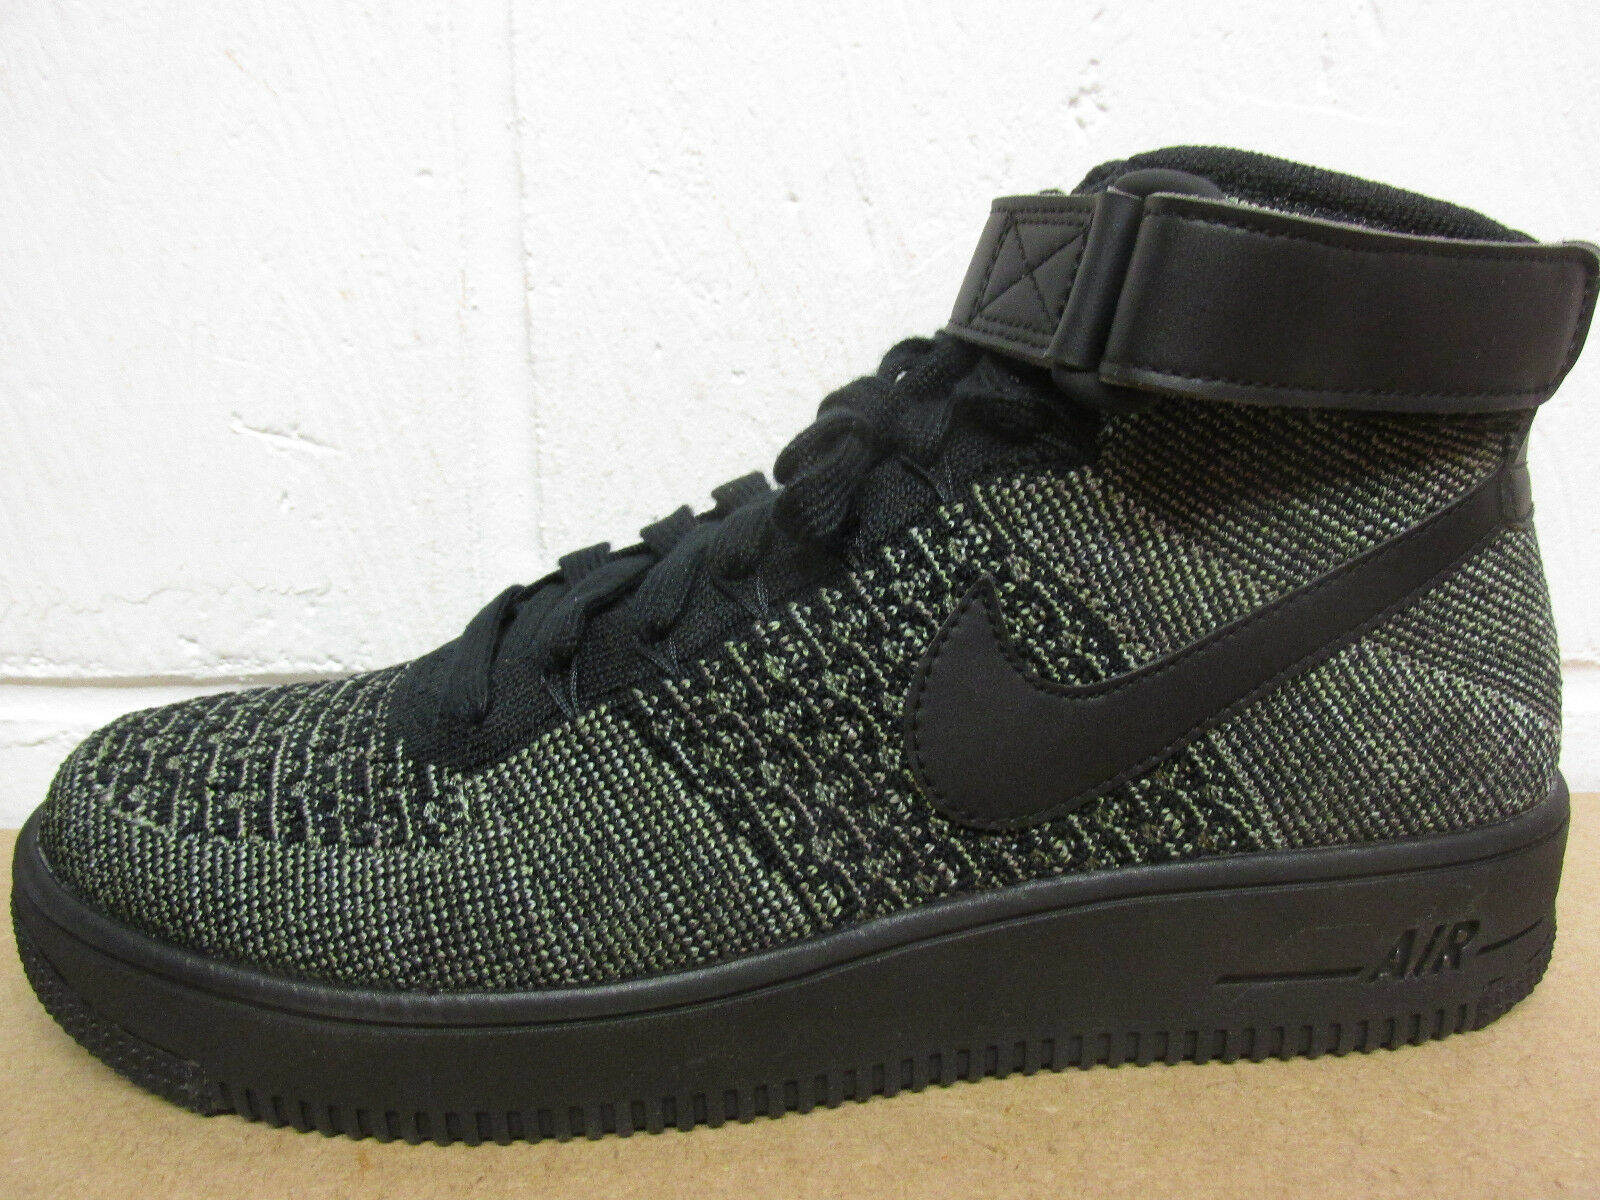 Nike AF1 Ultra Flyknit Mid  Uomo Schuhes Trainers 817420 301 Sneakers Schuhes Uomo eb348b